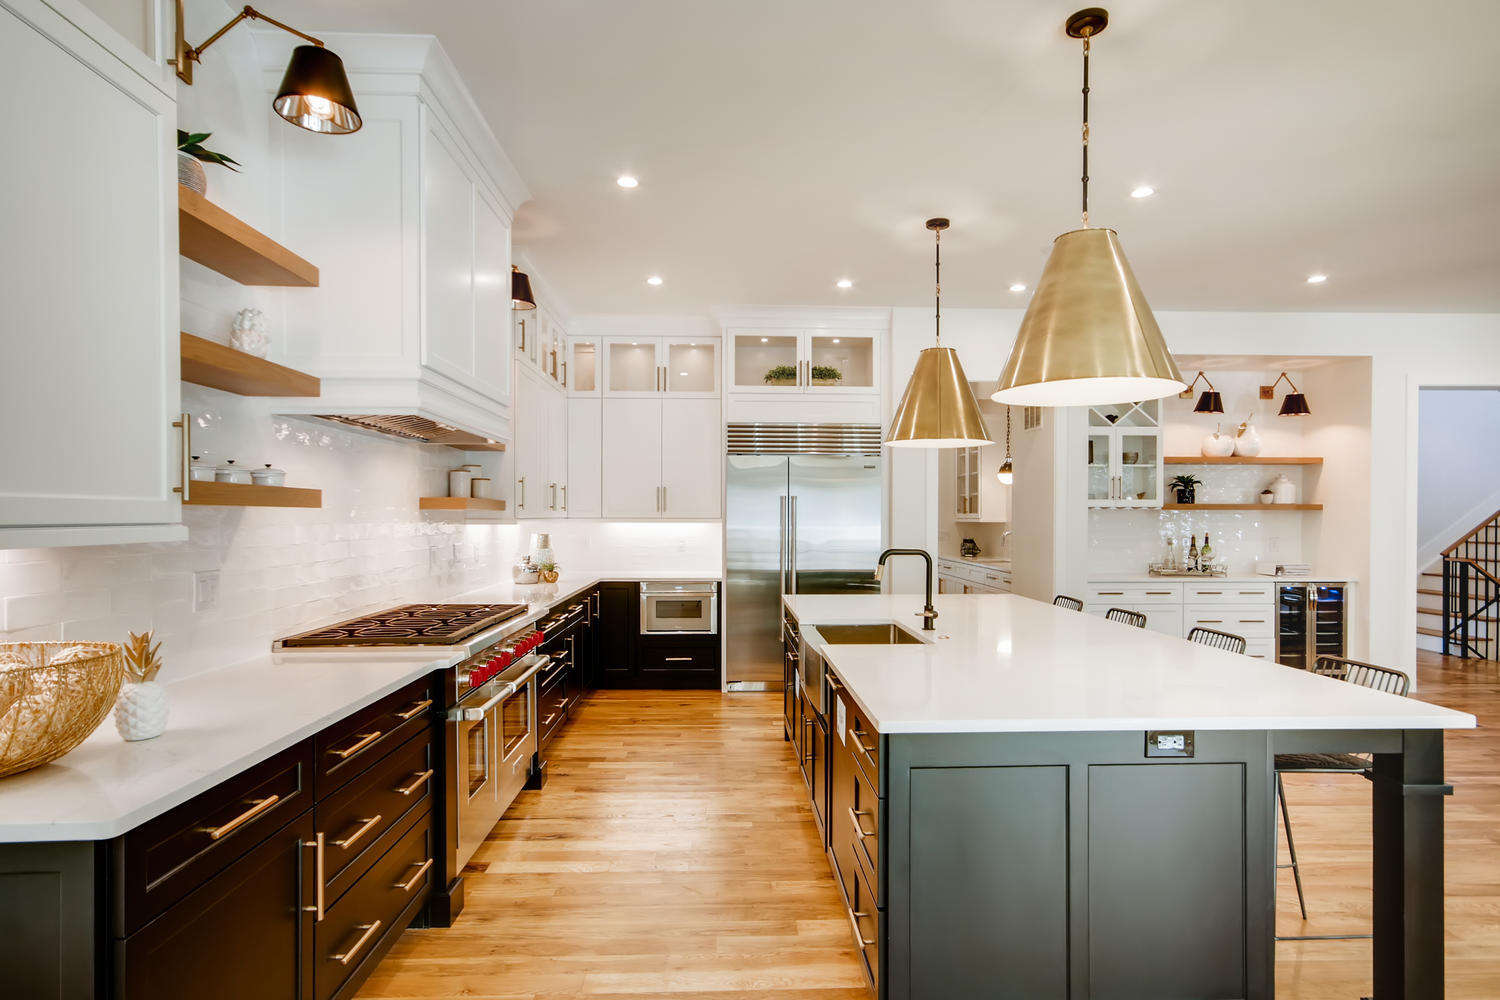 An updated take on the modern farmhouse kitchen with open shelving, a large center island, and contrasting cabinets